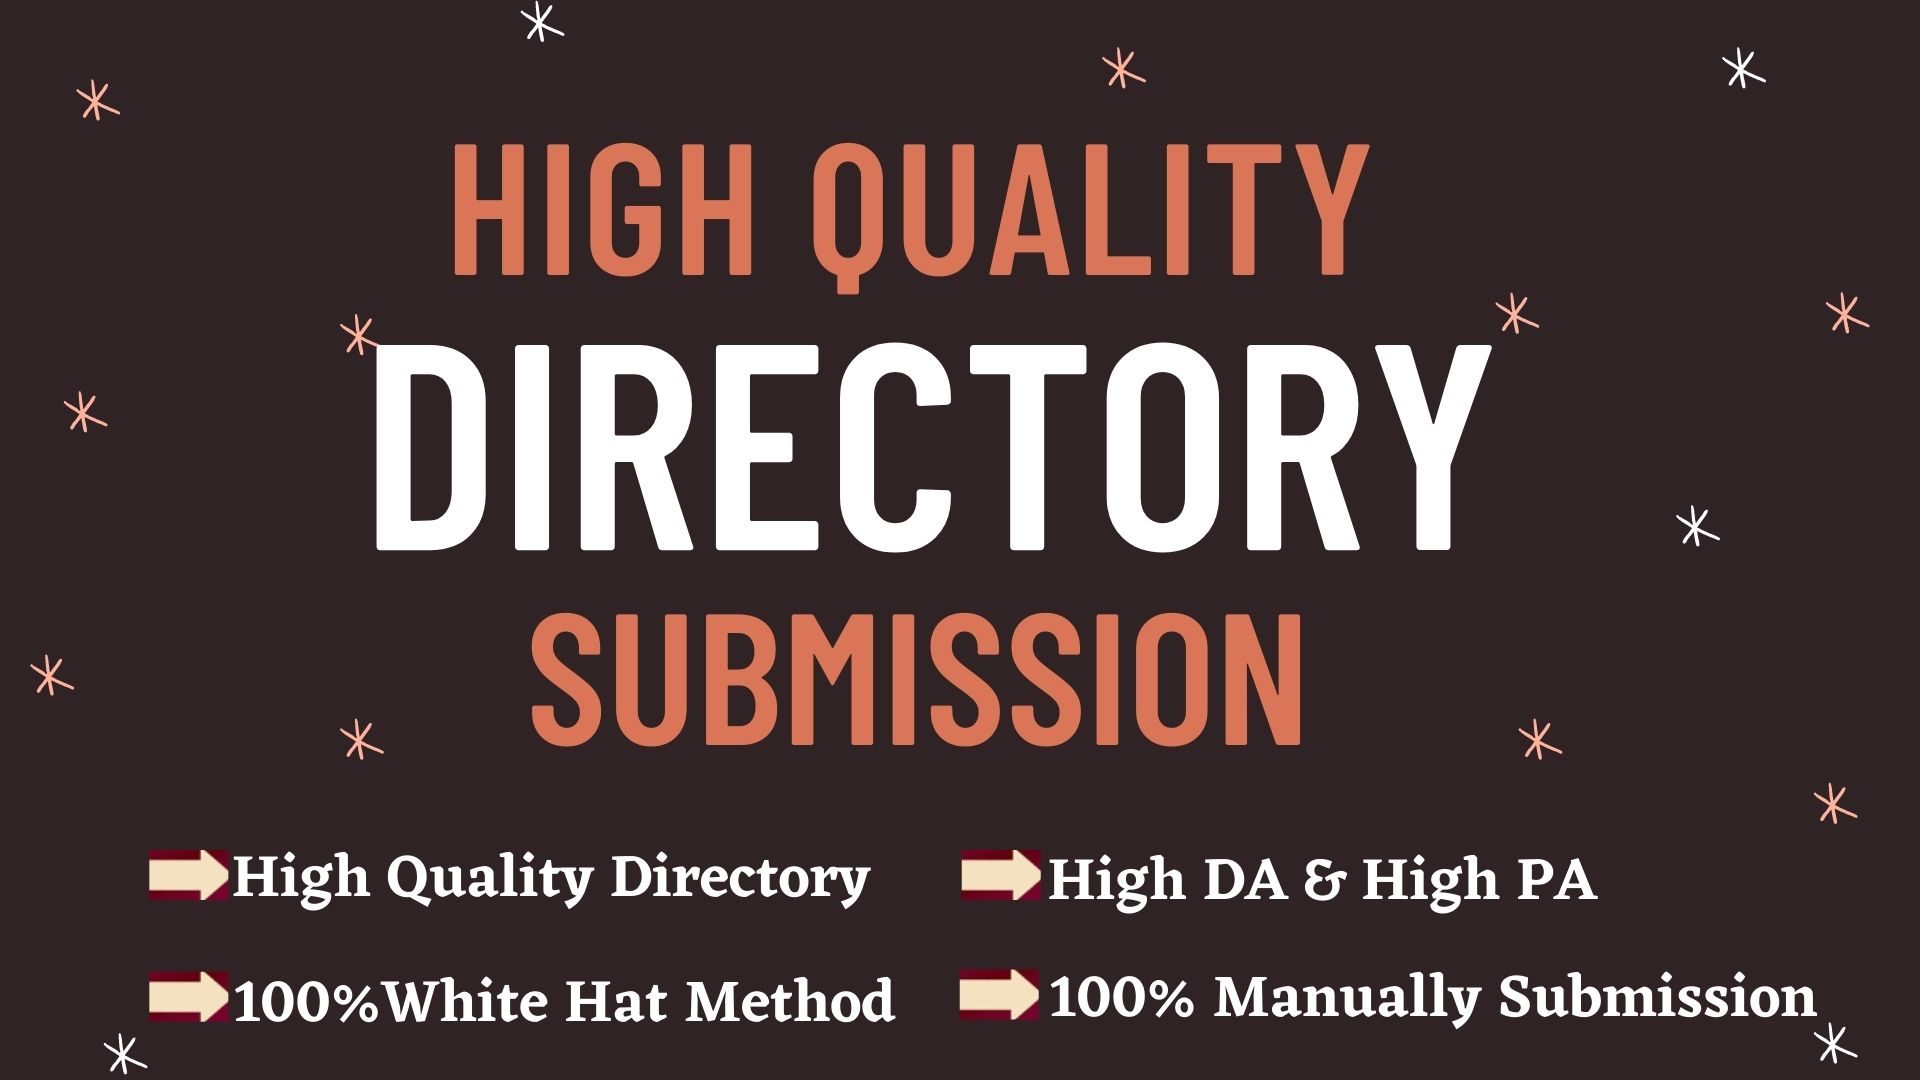 I will Provide 150 High Quality Directory Submission.